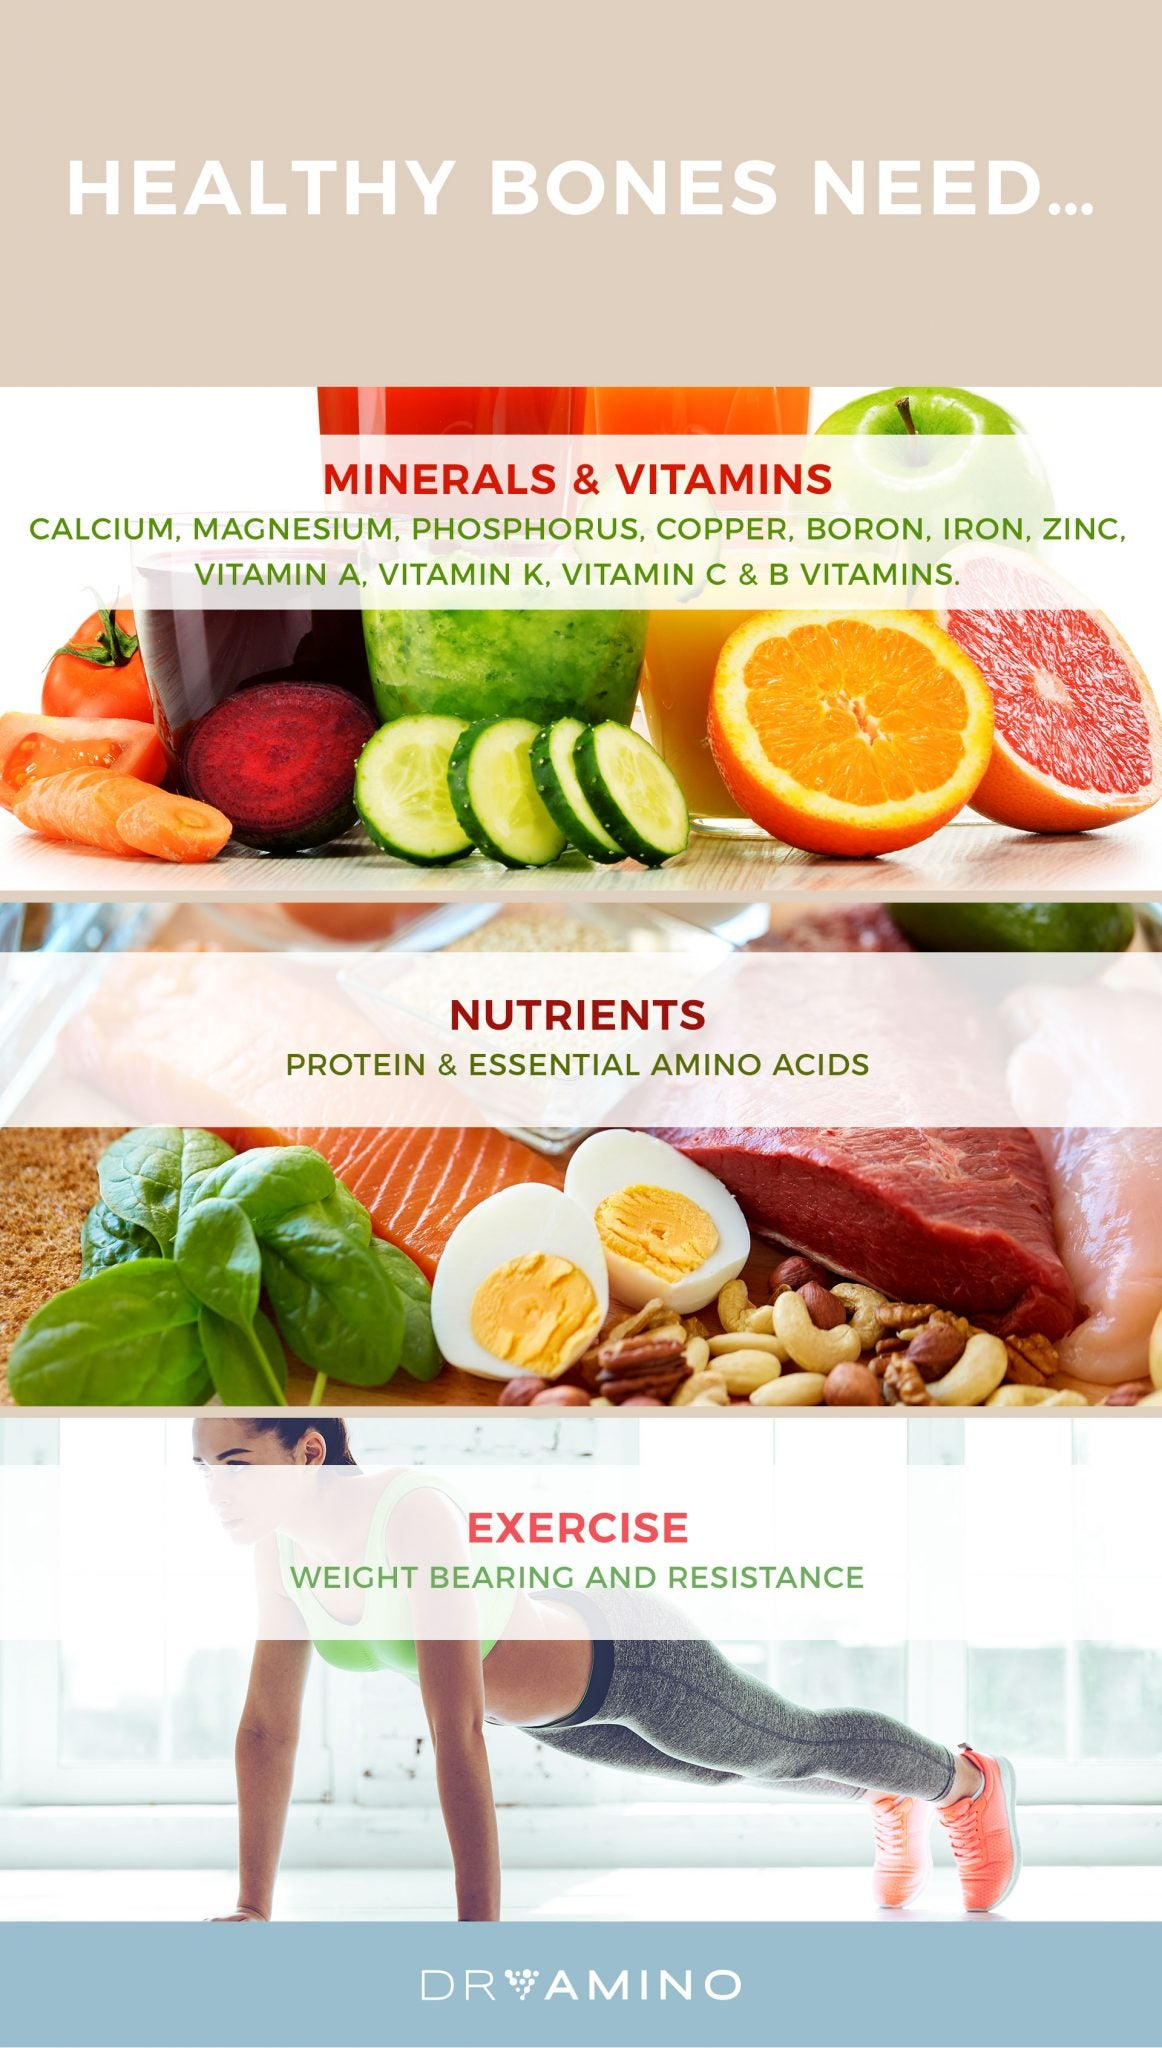 Most everyone recognizes calcium, vitamin D, and other minerals as key nutrients for bone health. What many people don't know is that a significant part of bone in living humans is comprised of protein. Dietary protein and amino acids are as important for bone building as they are for muscle building.